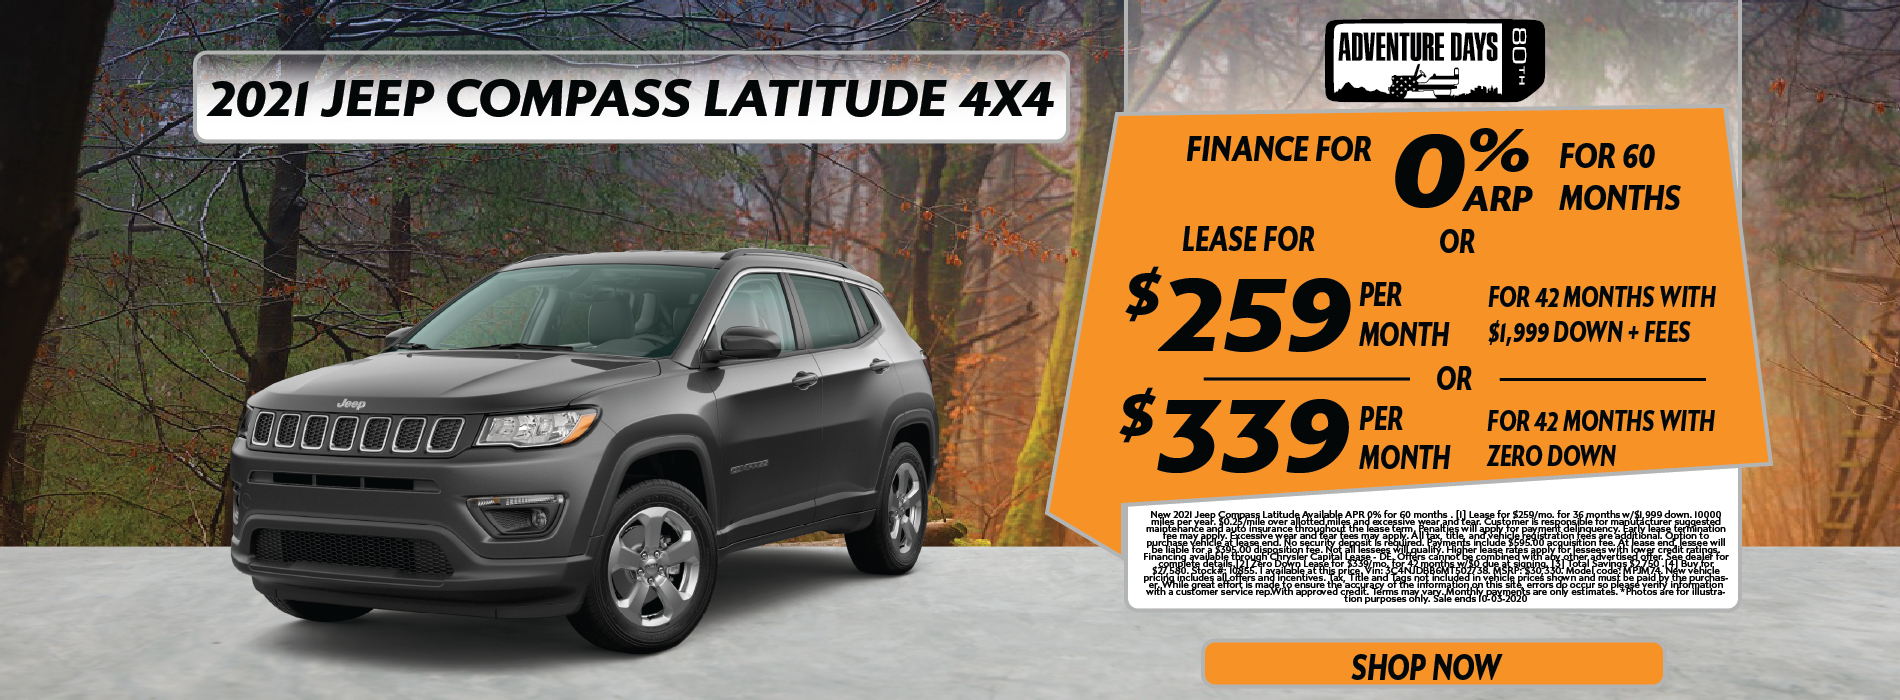 Whitewater – Jeep Compass September EOM